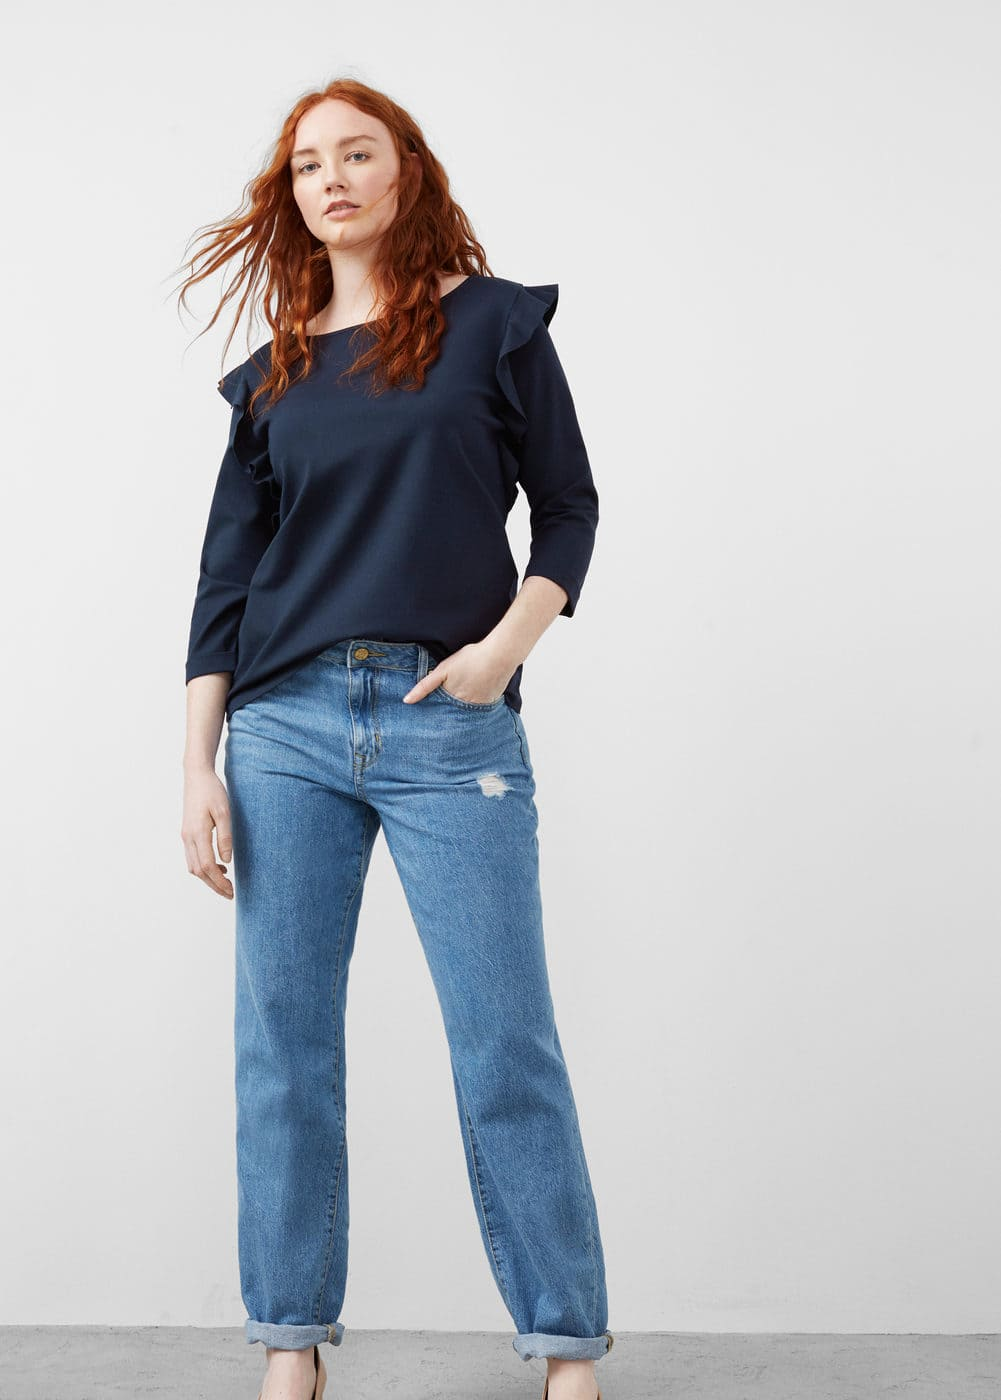 Ruffled detail t-shirt | VIOLETA BY MANGO